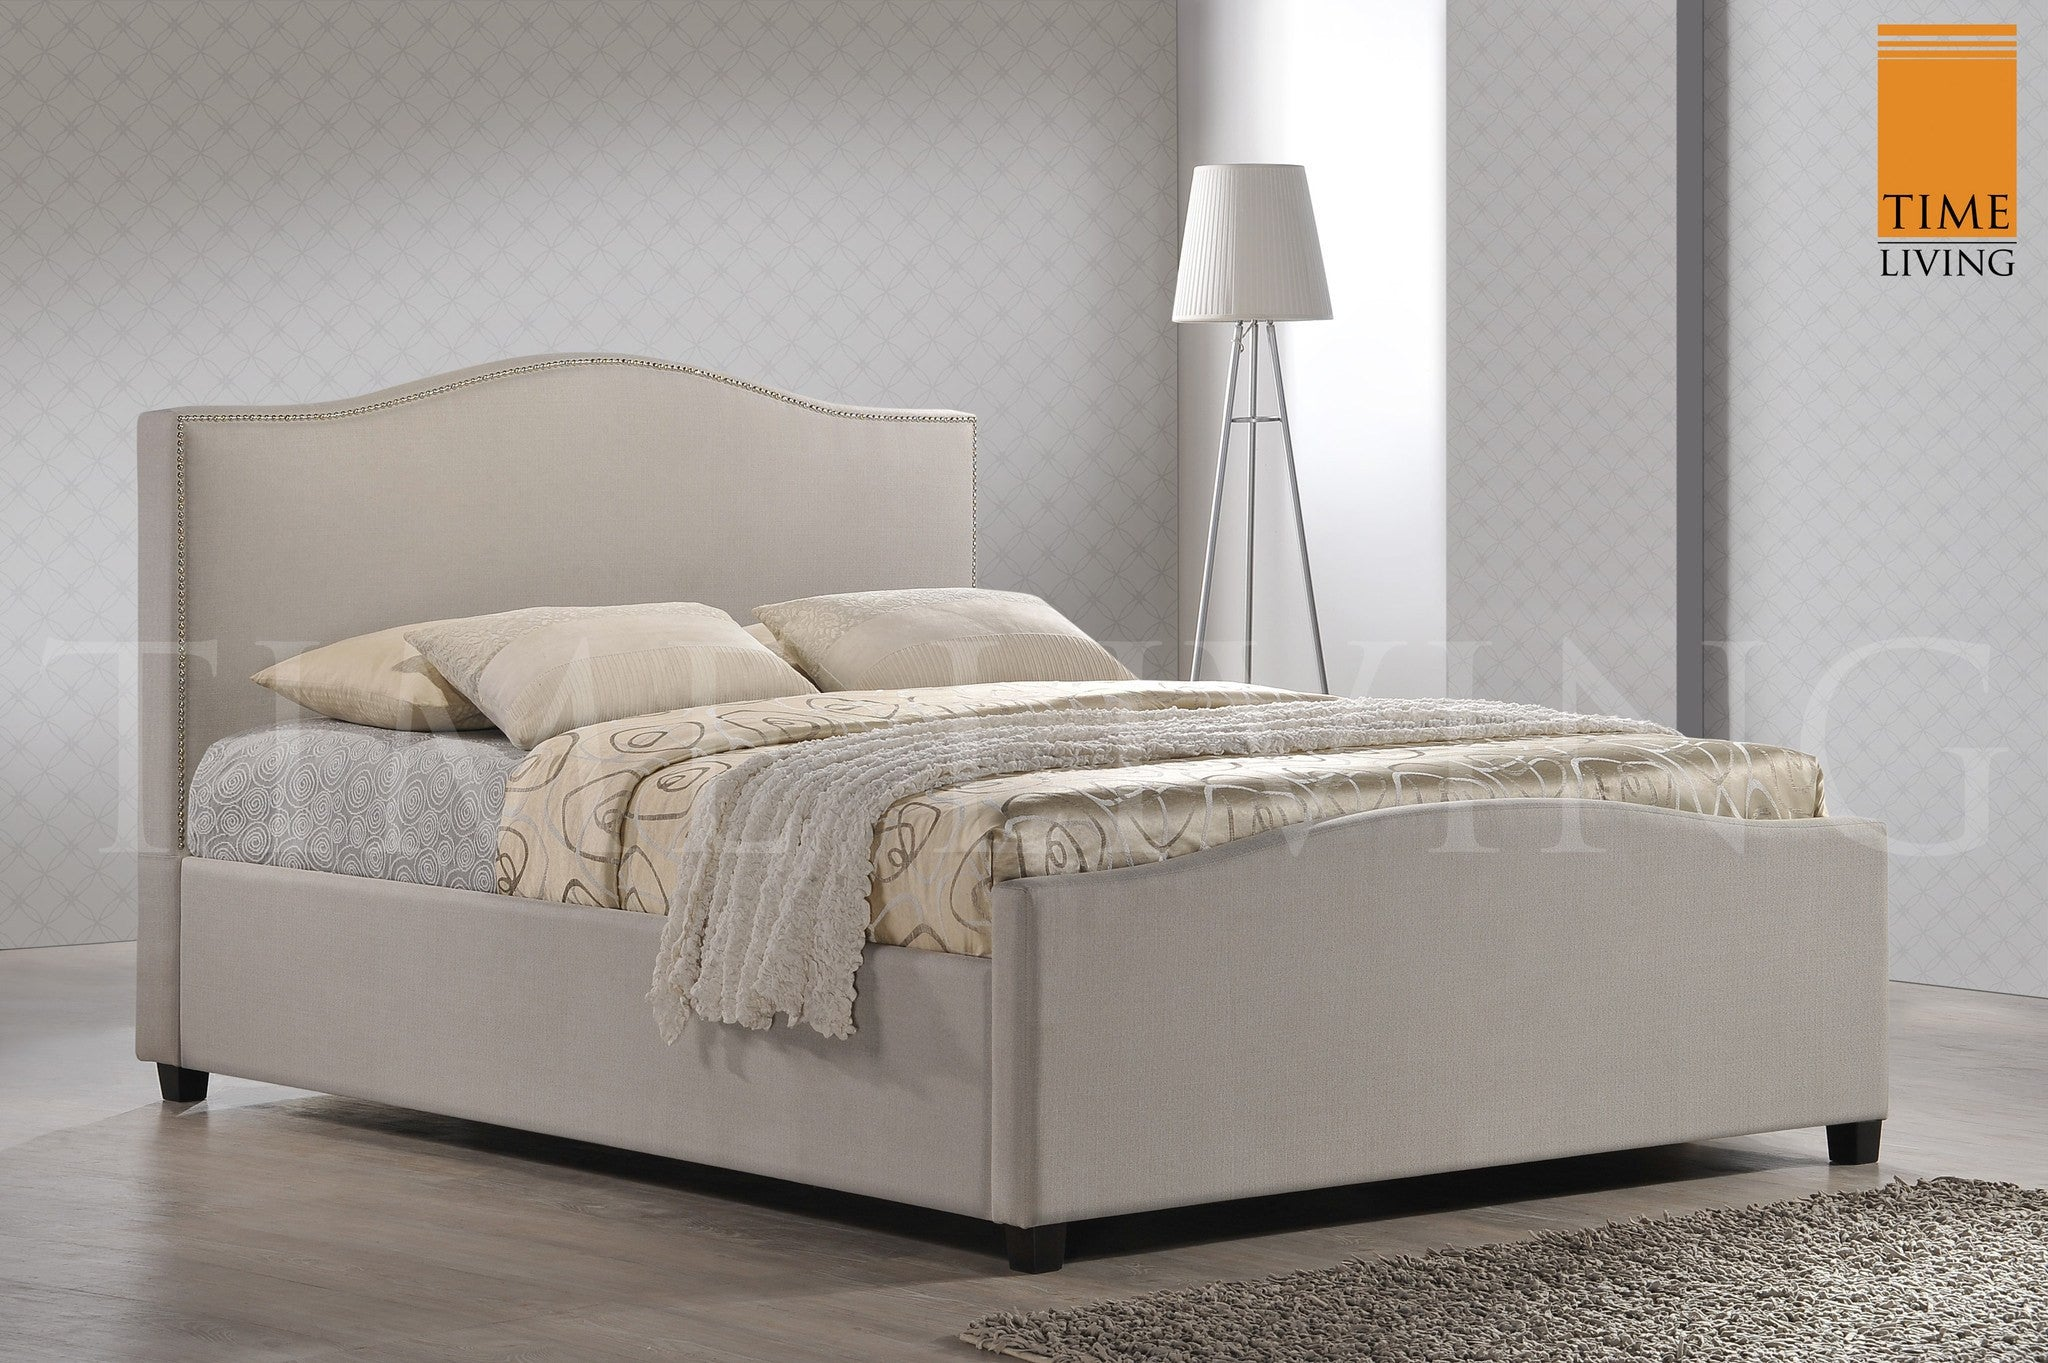 TIME LIVING Tuxford Sand Fabric Bed Frame